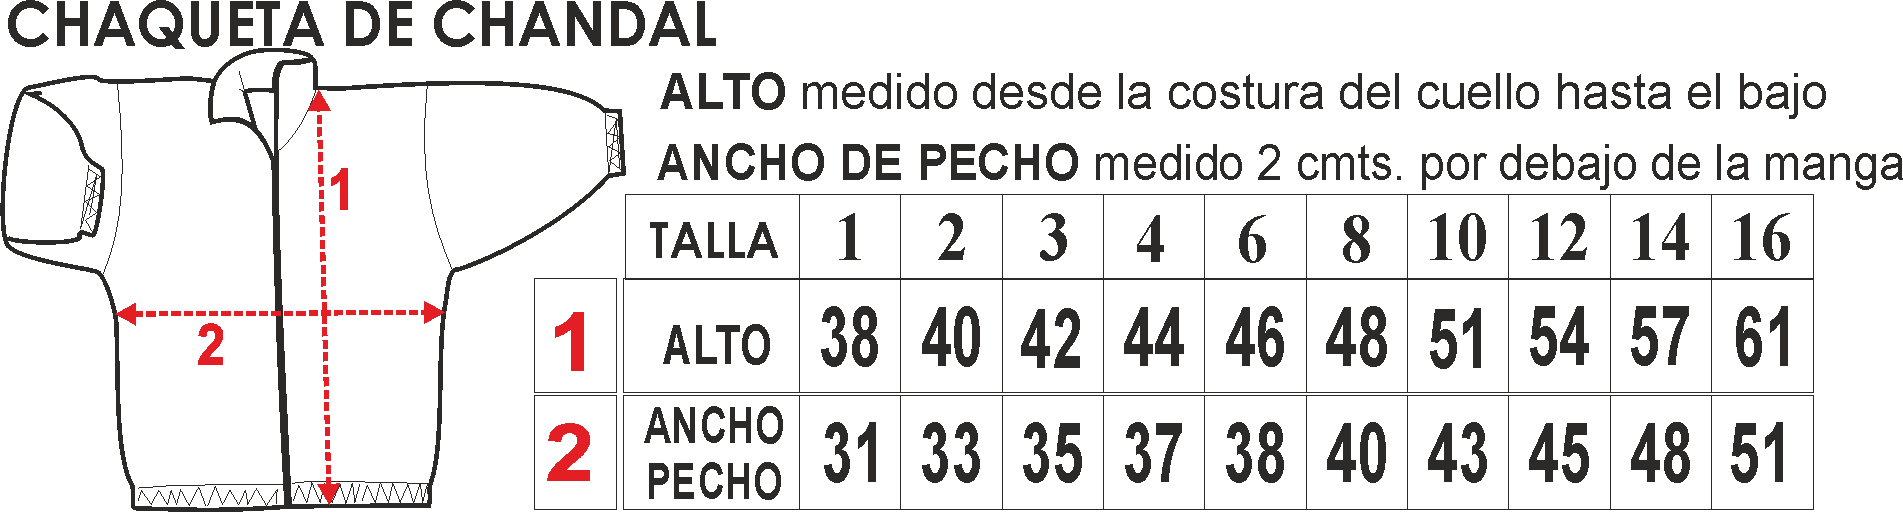 Tabla de tallas chaqueta